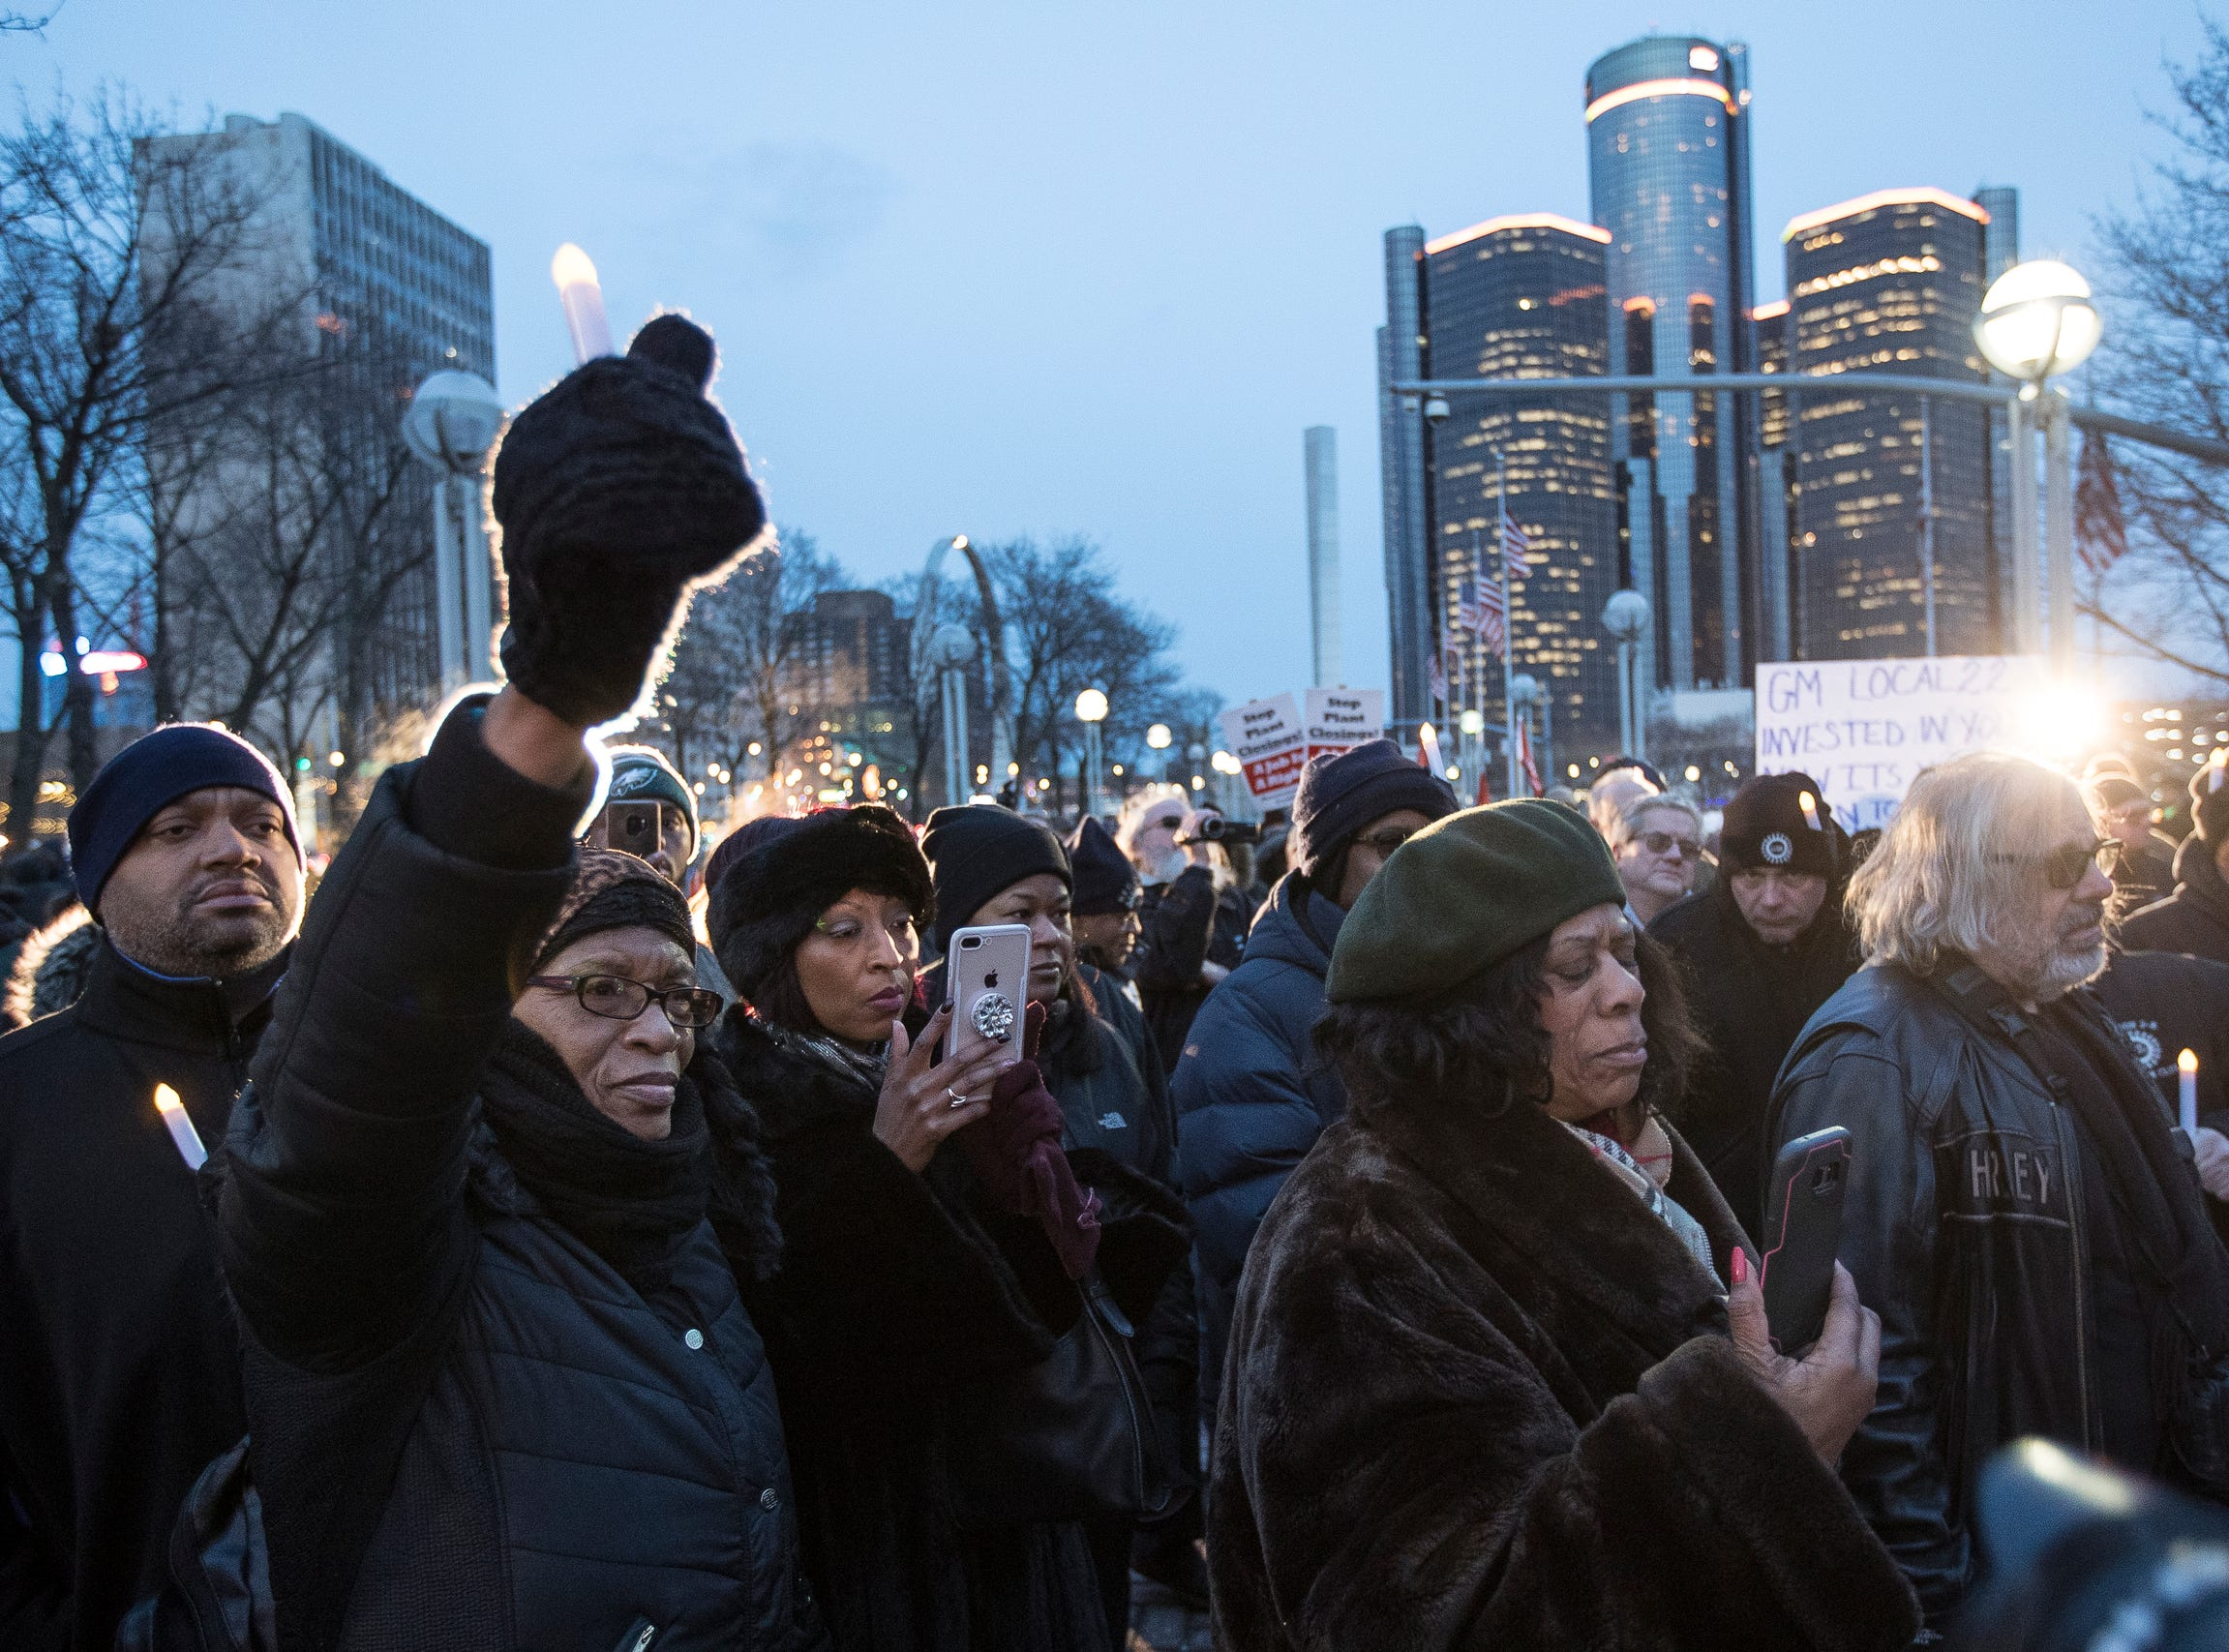 Ernestine Howse, left, holds her candle up as she listen to UAW local 900 Chaplin Philip Jackson speaks during the UAW pre-charity preview candlelight vigil at the Hart Plaza in Detroit on Friday, January 18, 2019. Alberta Tinsley Talabi (D) State Representative, District 2 is pictured in green hat.